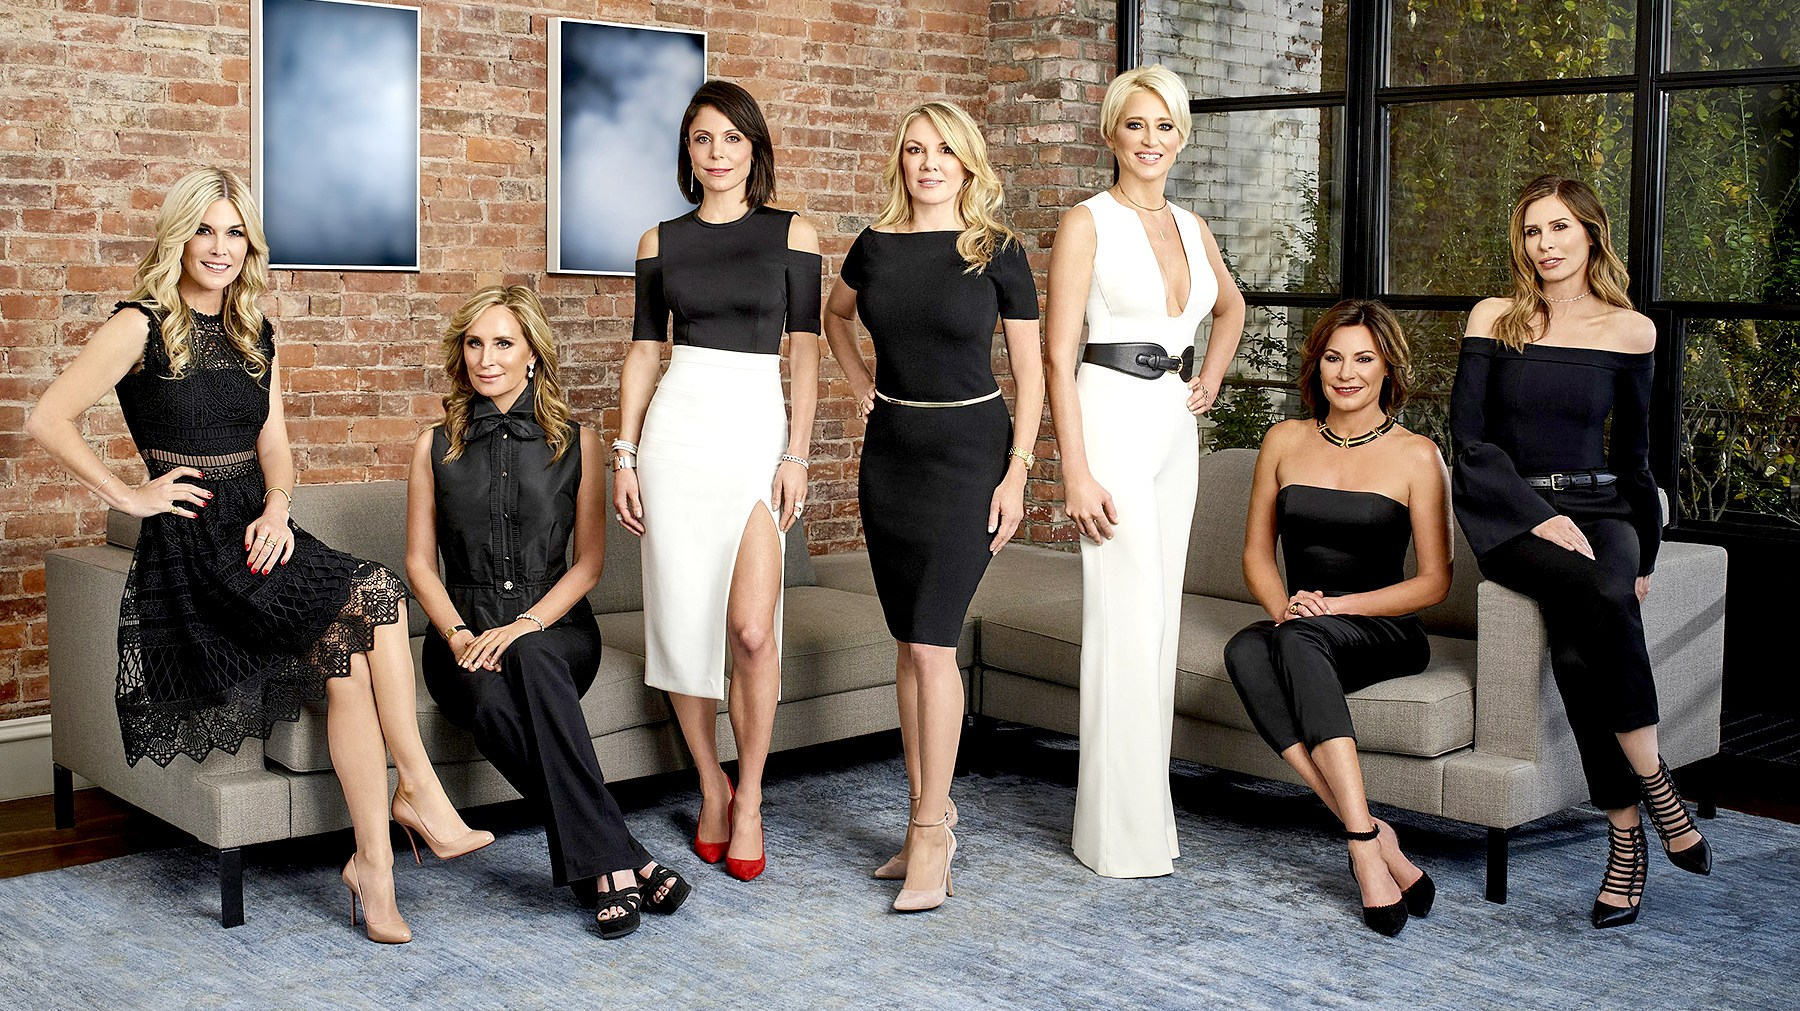 Tinsley Mortimer, Sonja Morgan, Bethenny Frankel, Ramona Singer, Dorinda Medley, Luann D'Agostino, and Carole Radziwill on The Real Housewives of New York.